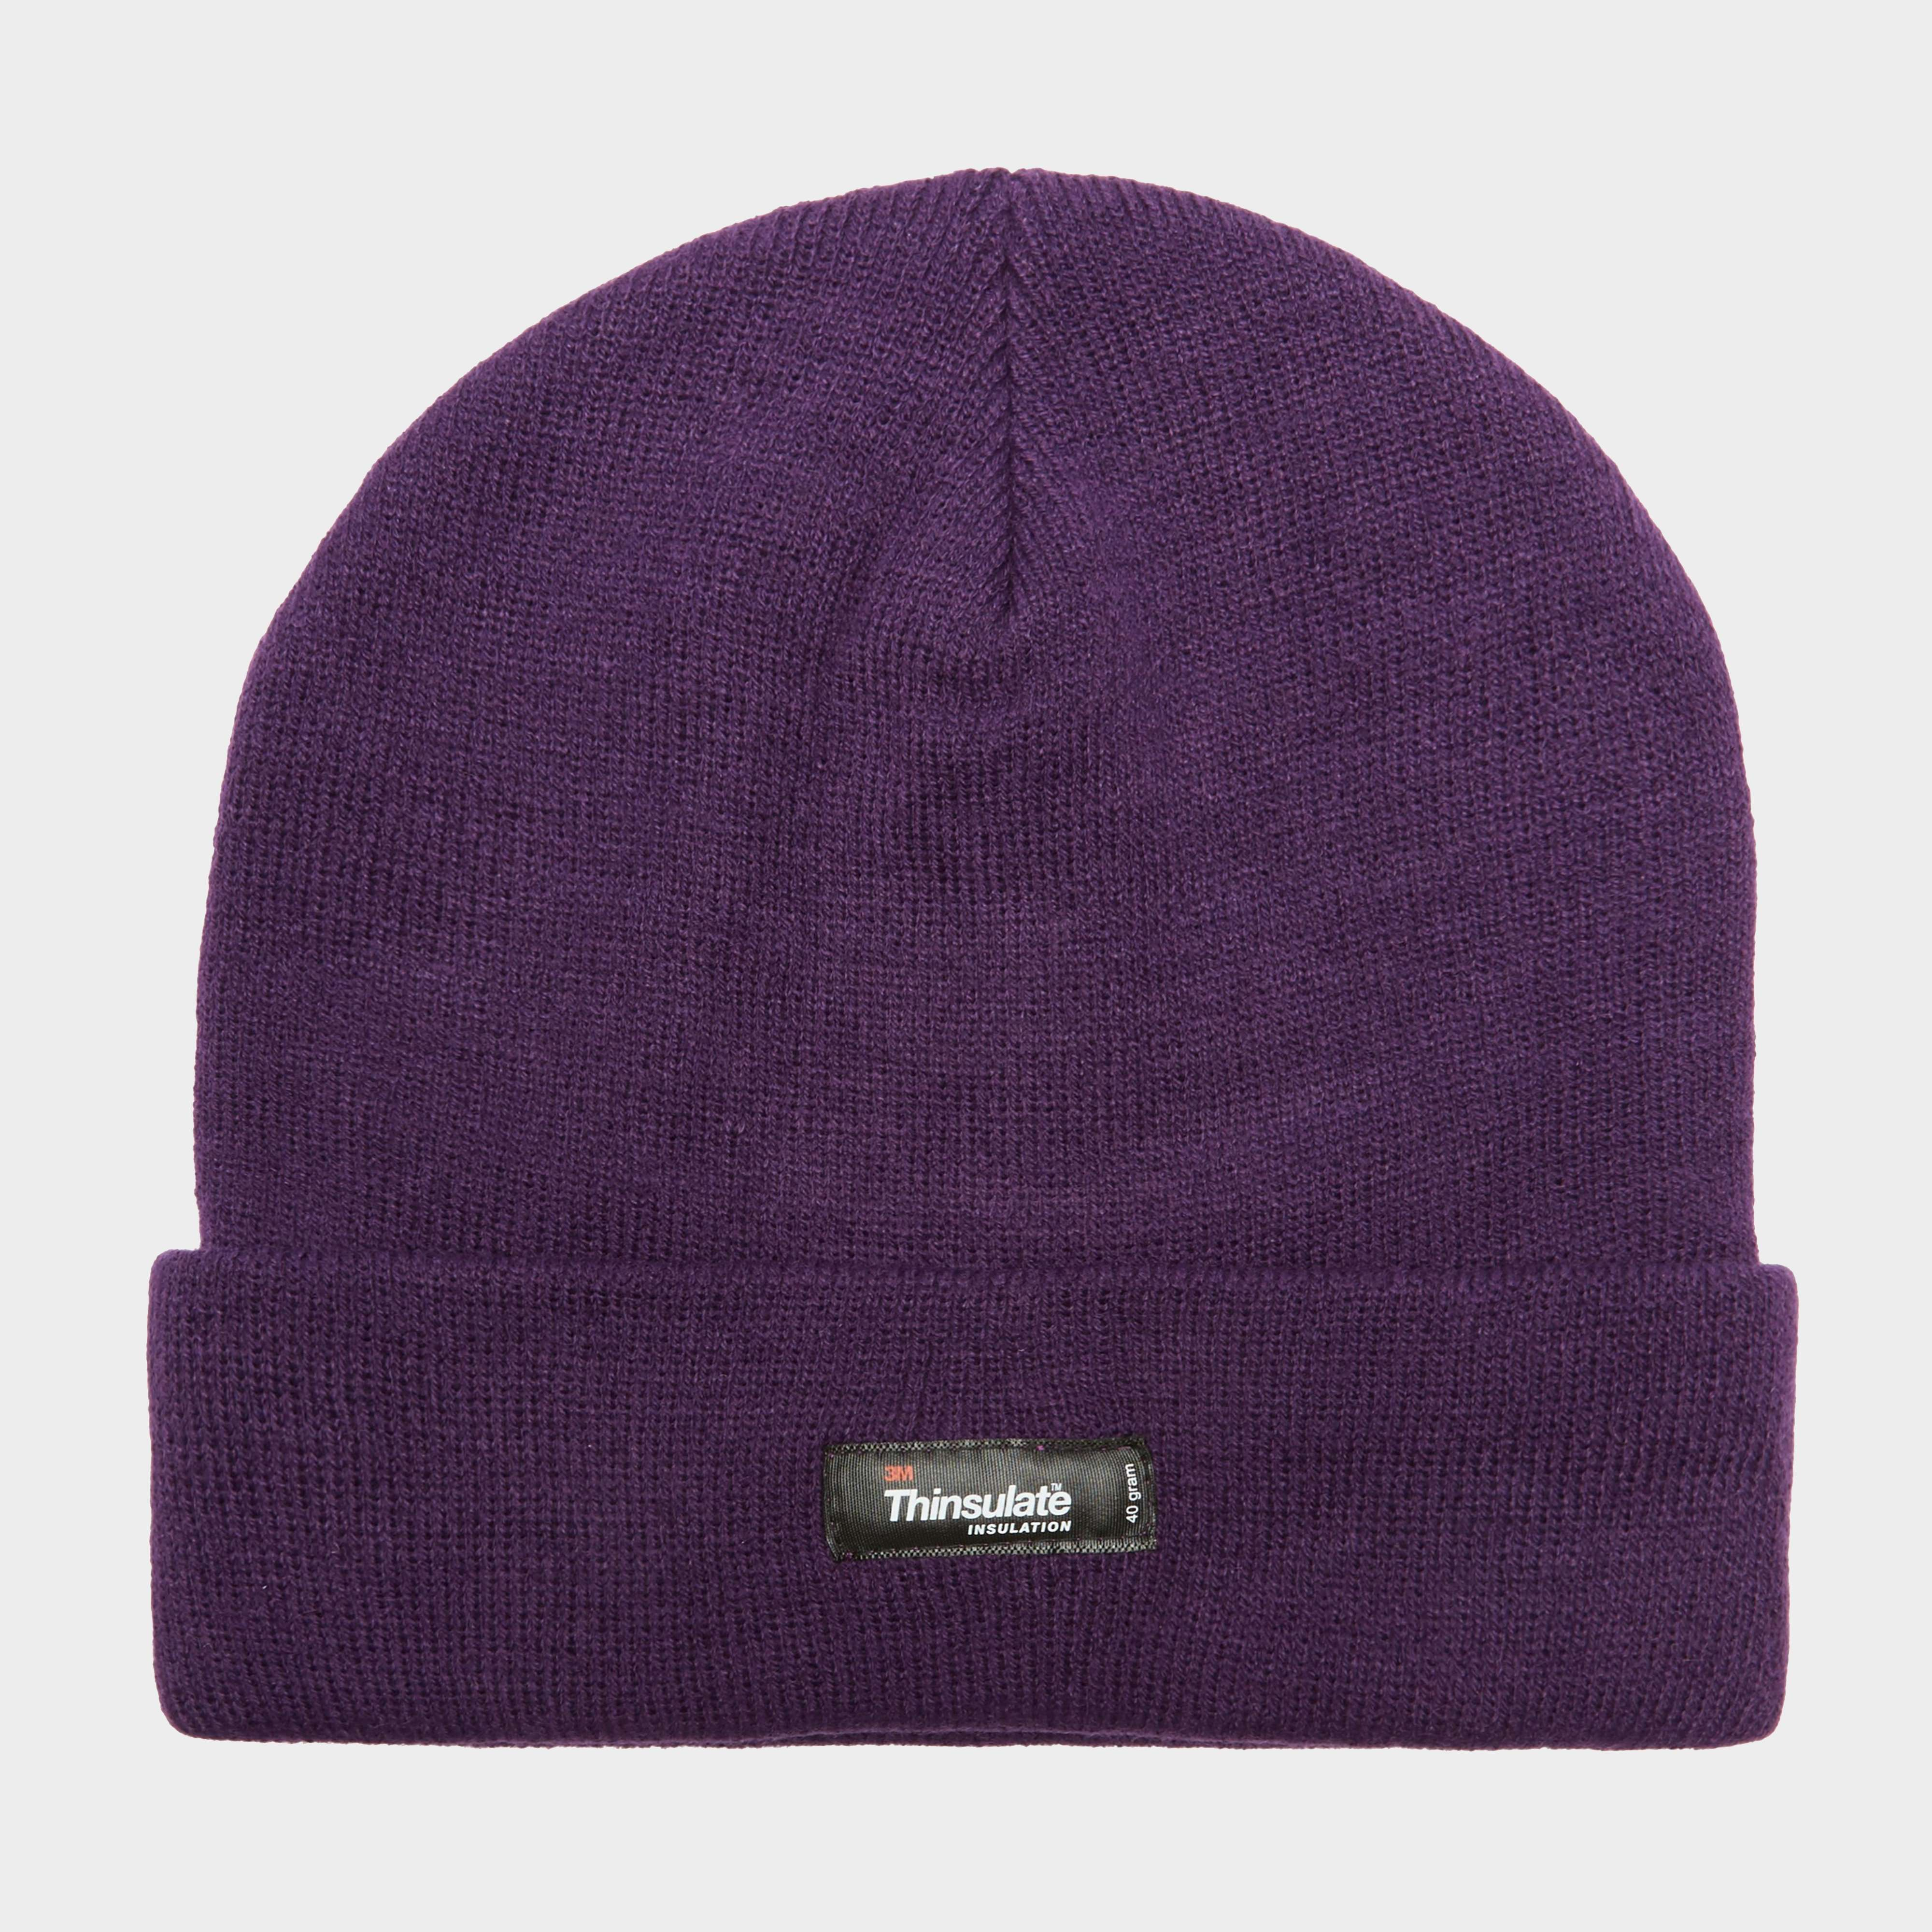 PETER STORM Unisex Thinsulate Knit Beanie